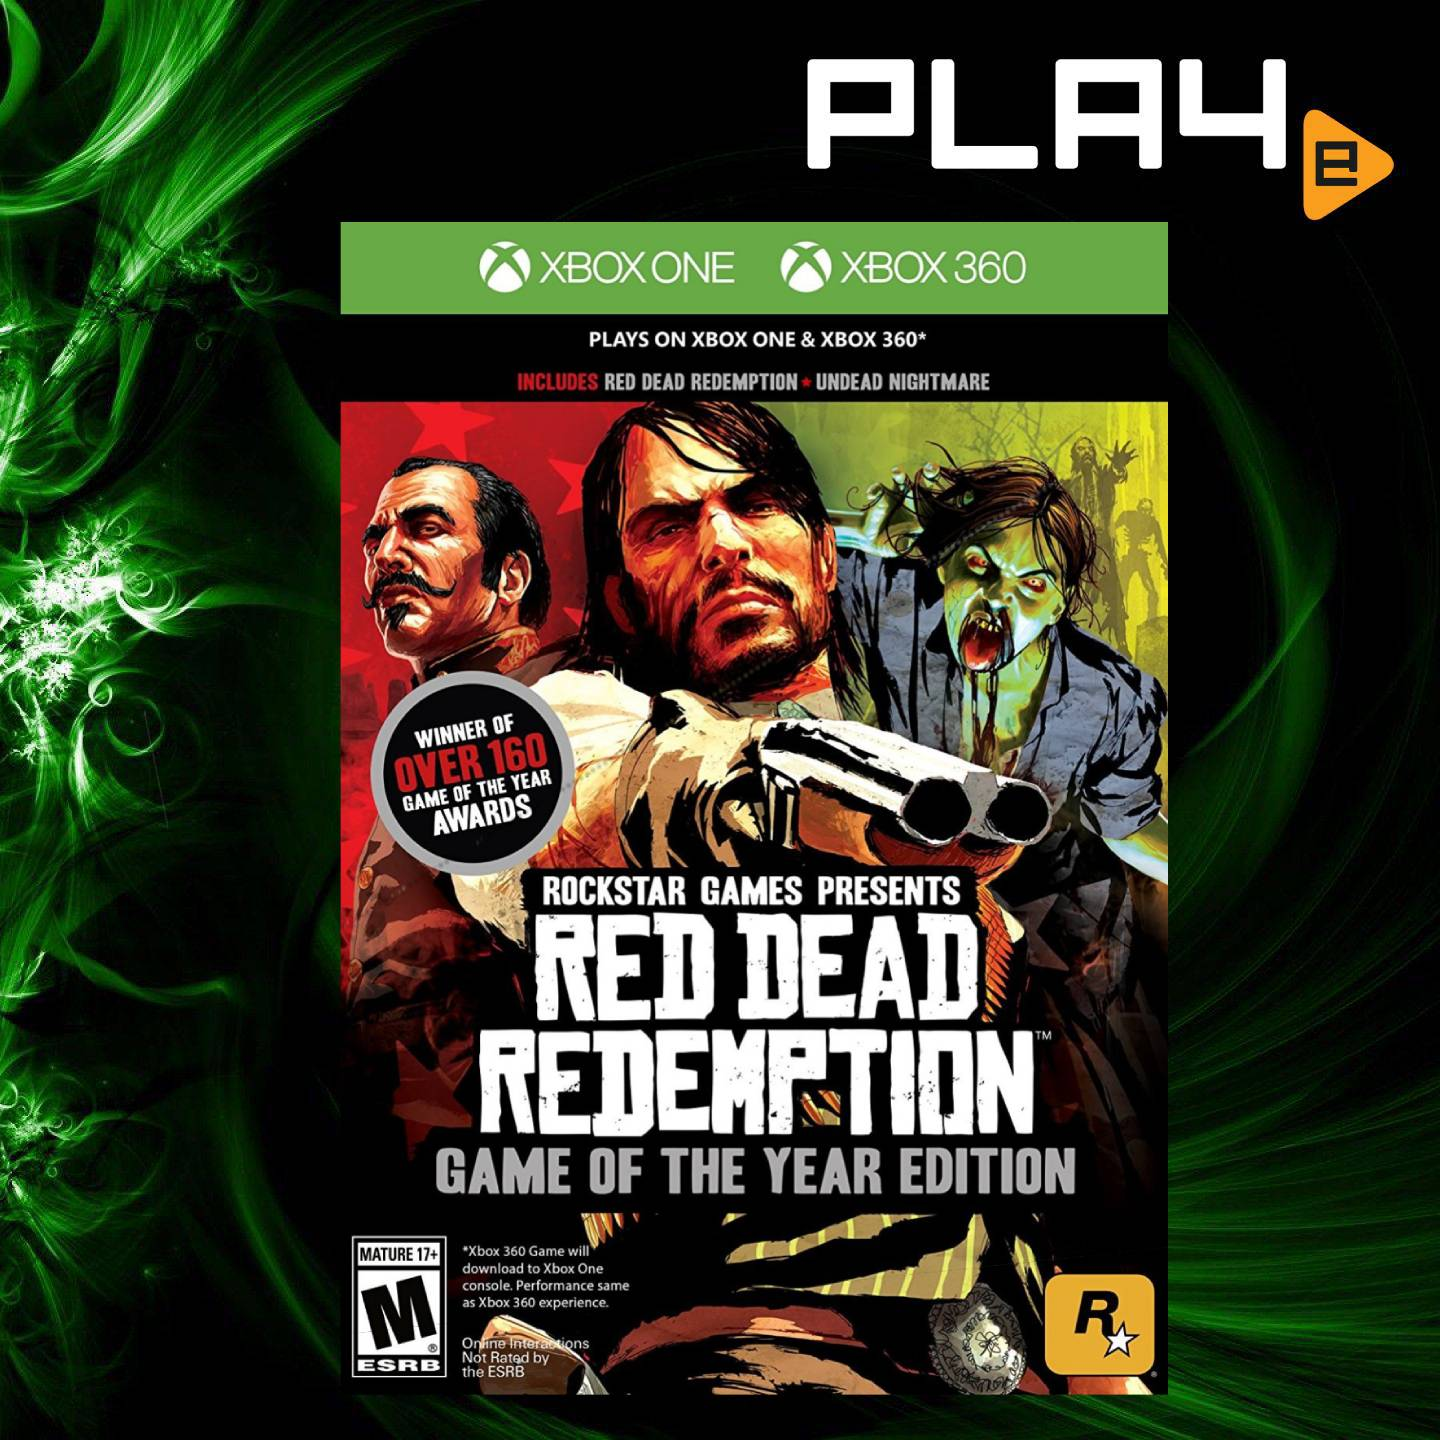 XBox 360 Red Dead Redemption: Game of the Year Edition | PLAYe